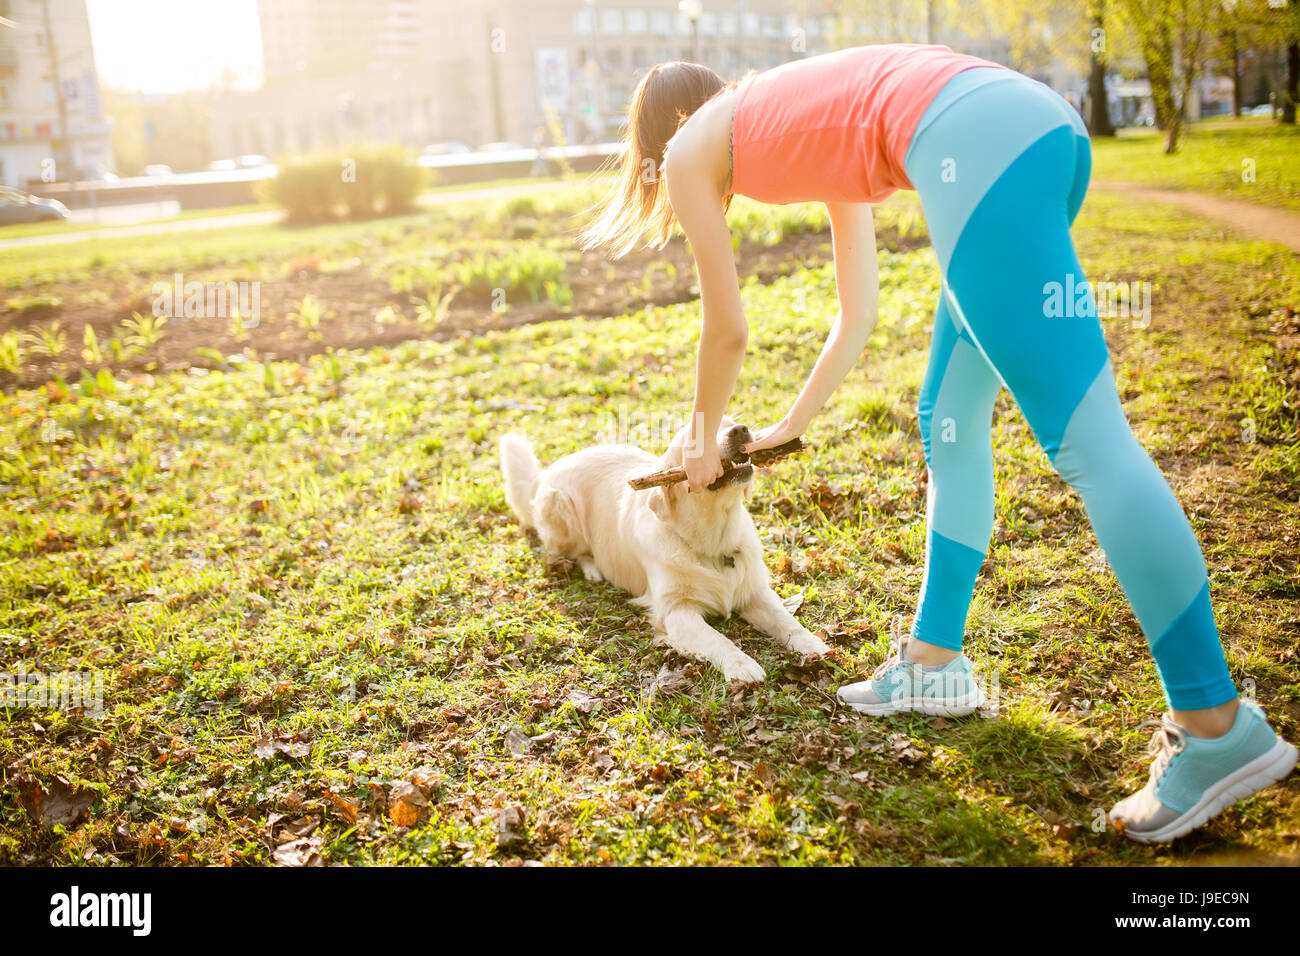 Girl ,,labrador ,playing with stick - Stock Image